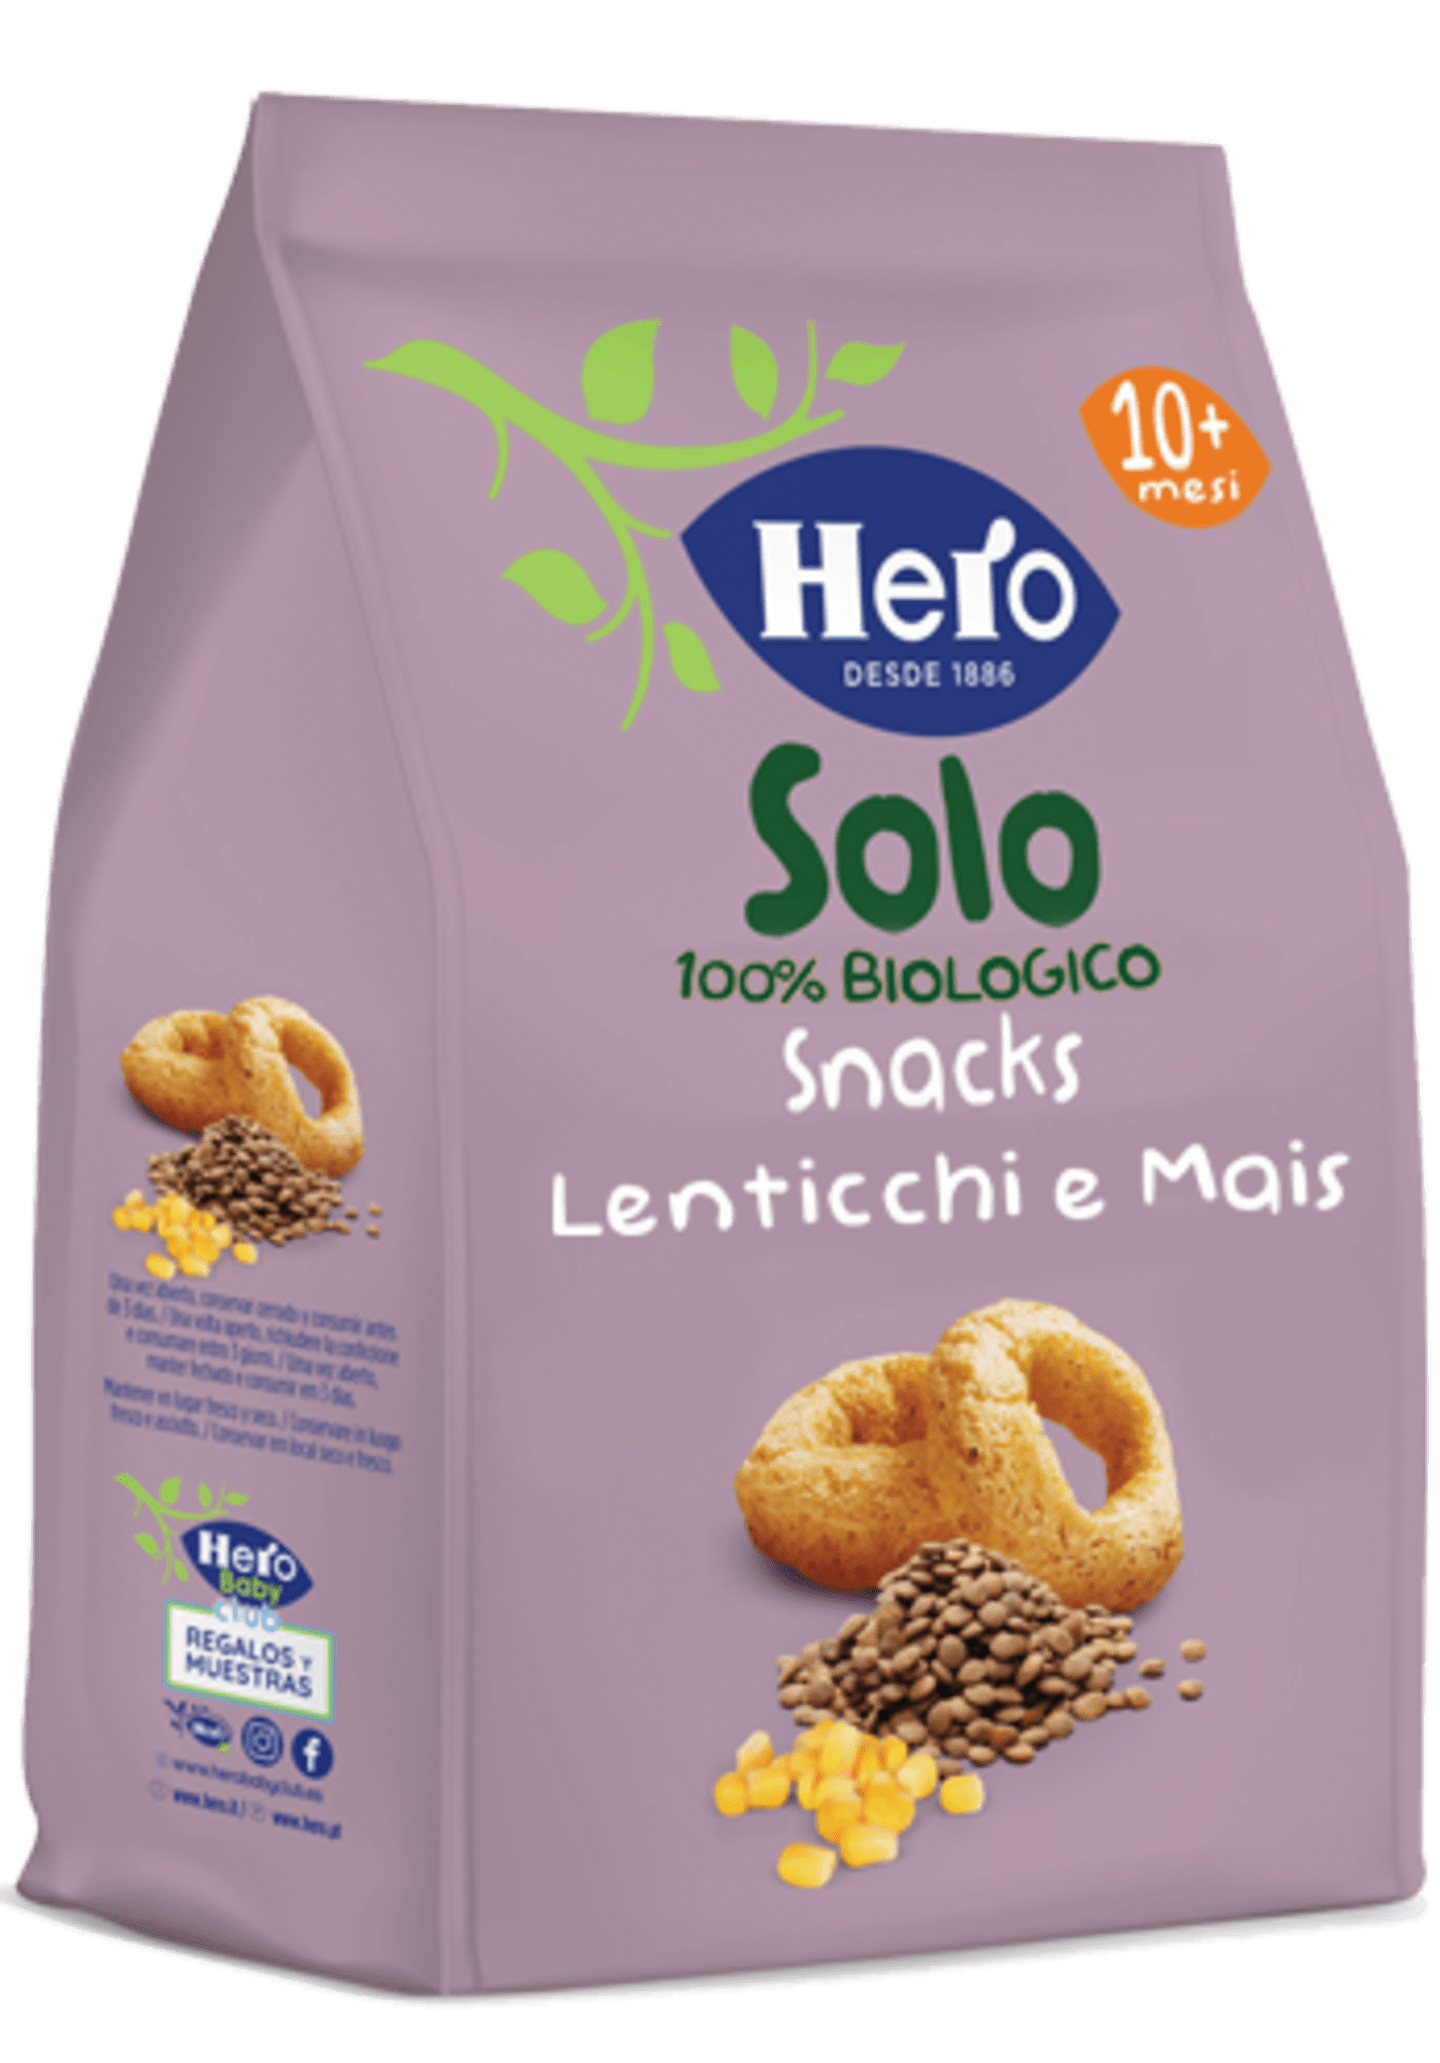 Snacks Lenticchie e Mais Biologici